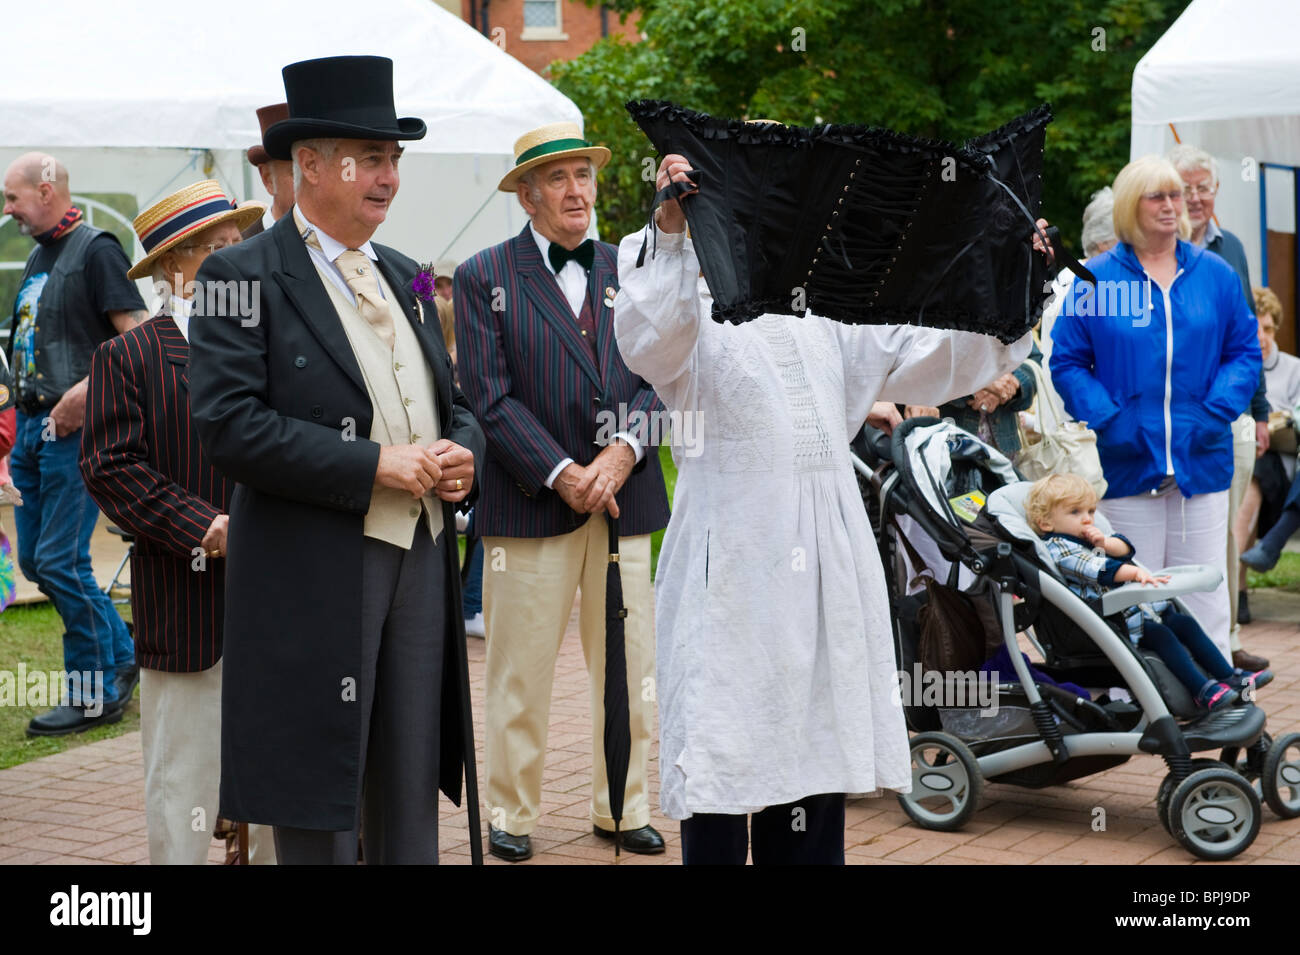 Gentlemen in period costume one holding up a corset at the annual Victorian Festival in Llandrindod Wells Powys - Stock Image